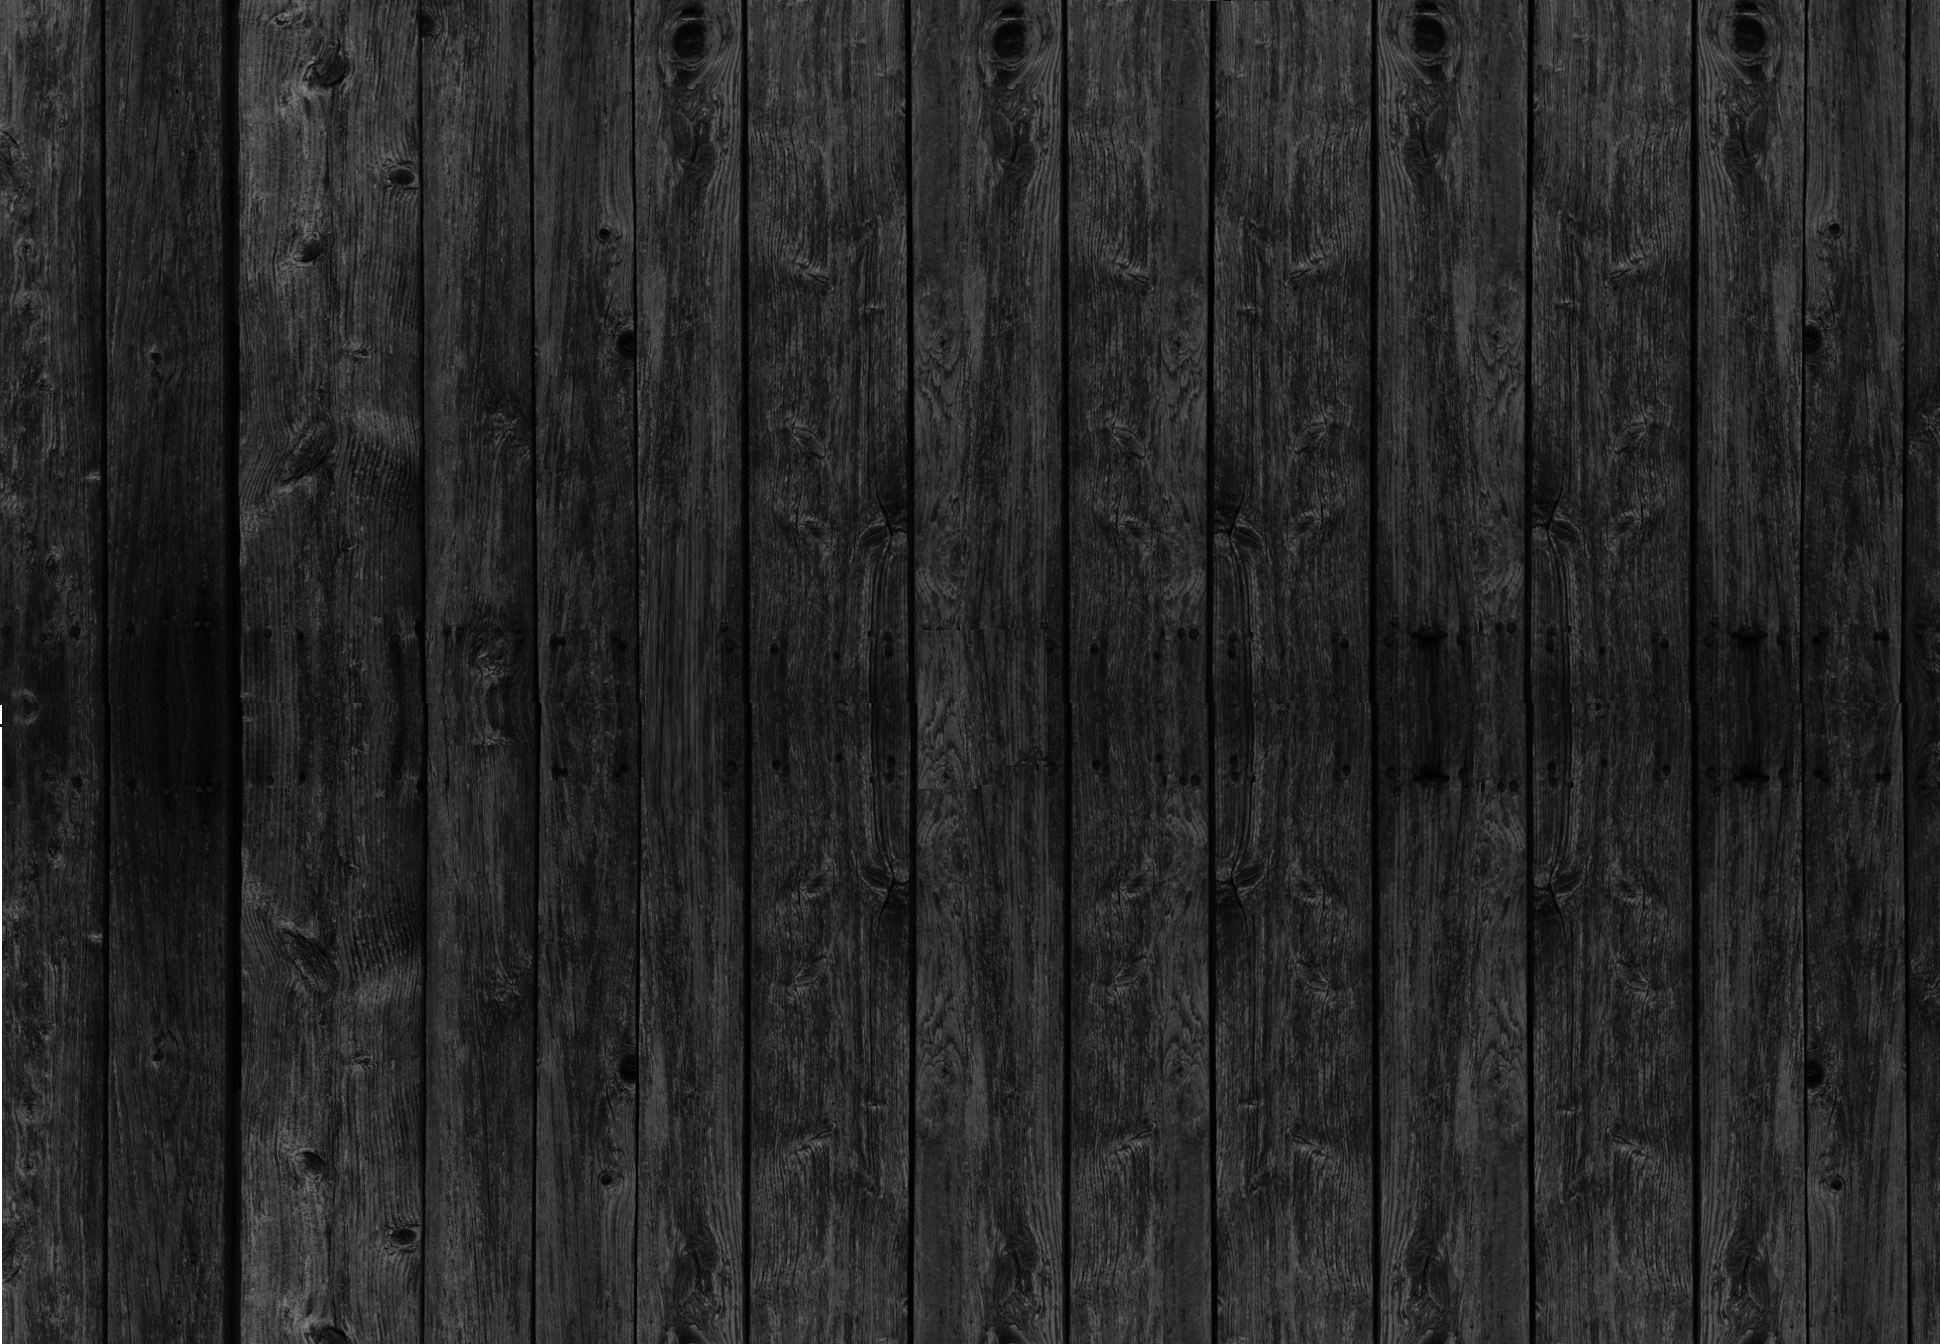 black wood flooring black and white wood texture plank floor wall line black monochrome  background KKGLNEA